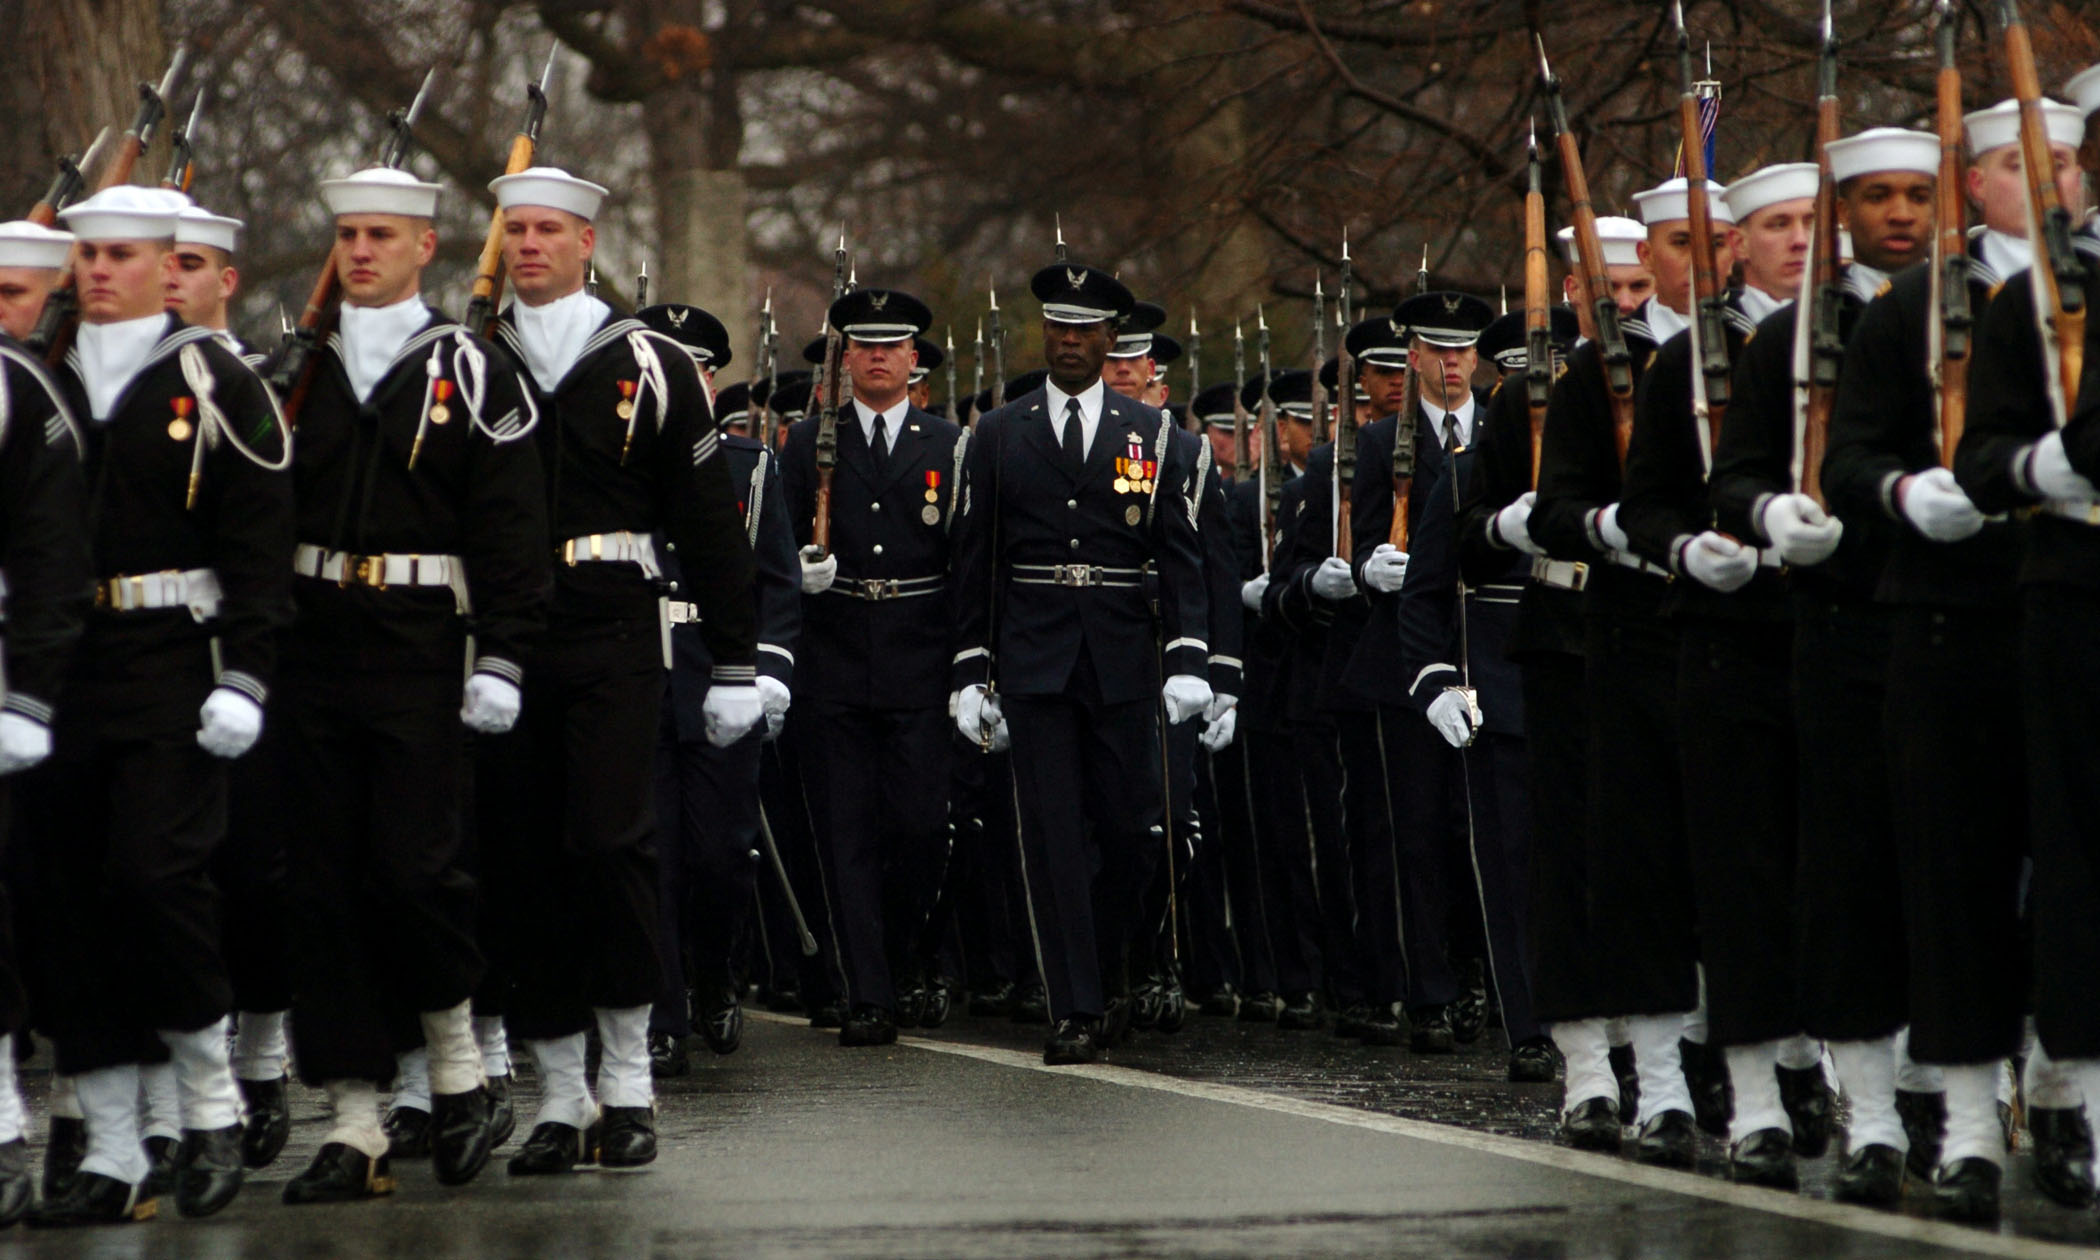 Navy Funeral Honors Uniform http://en.wikipedia.org/wiki/File:US_Navy ...